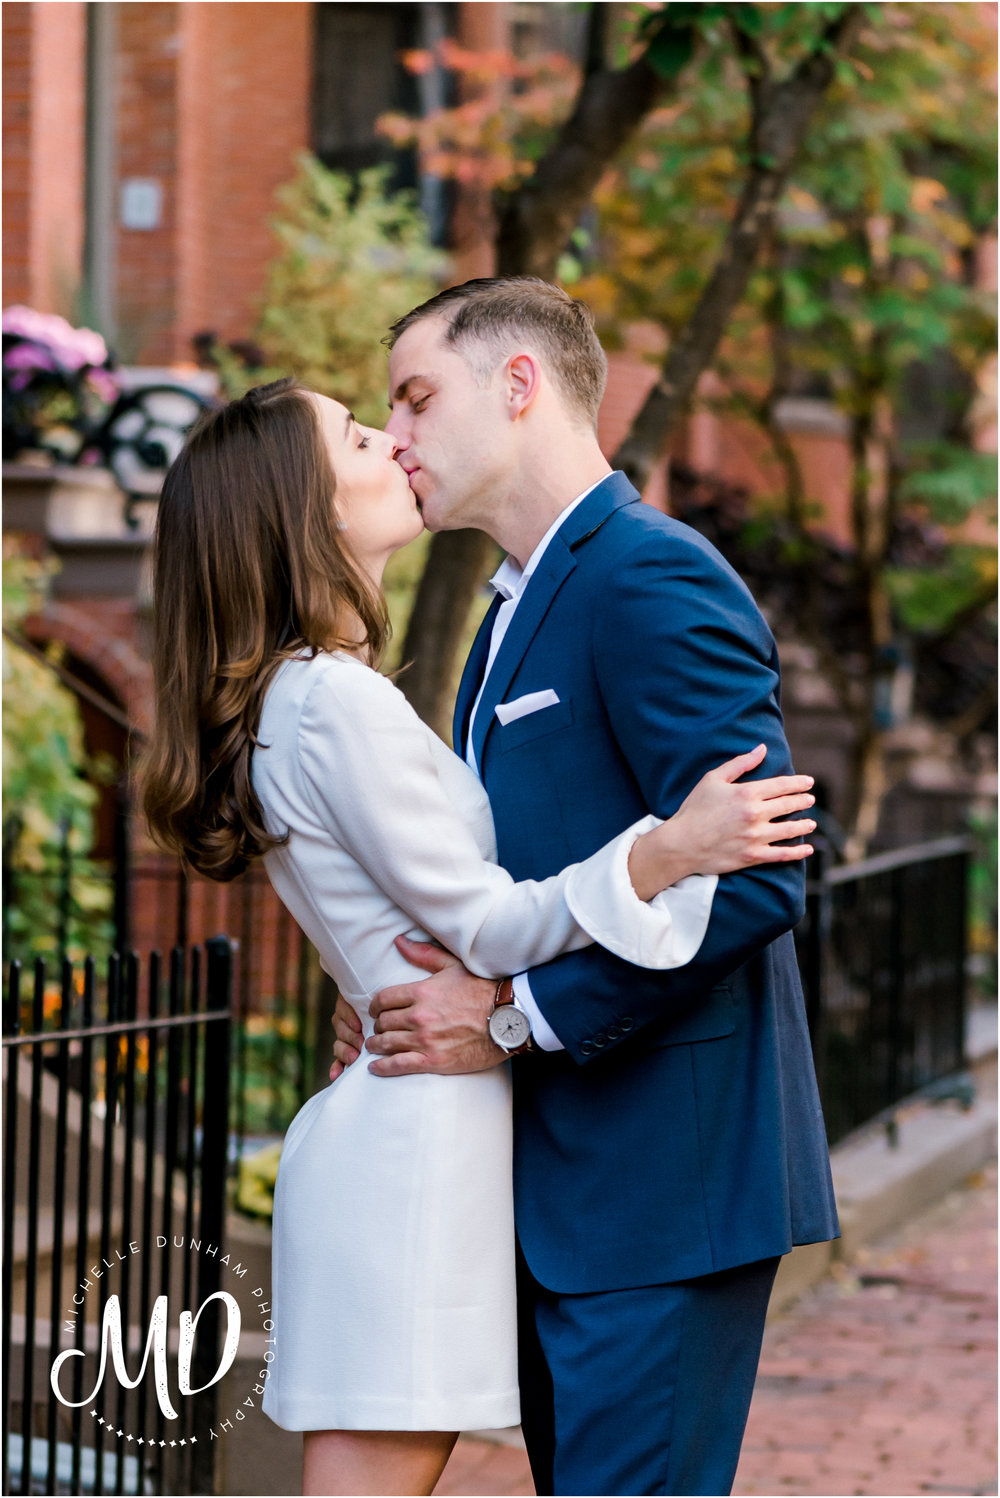 Michelle-Dunham-Photography-Engagement-South-End-Boston-23.jpg